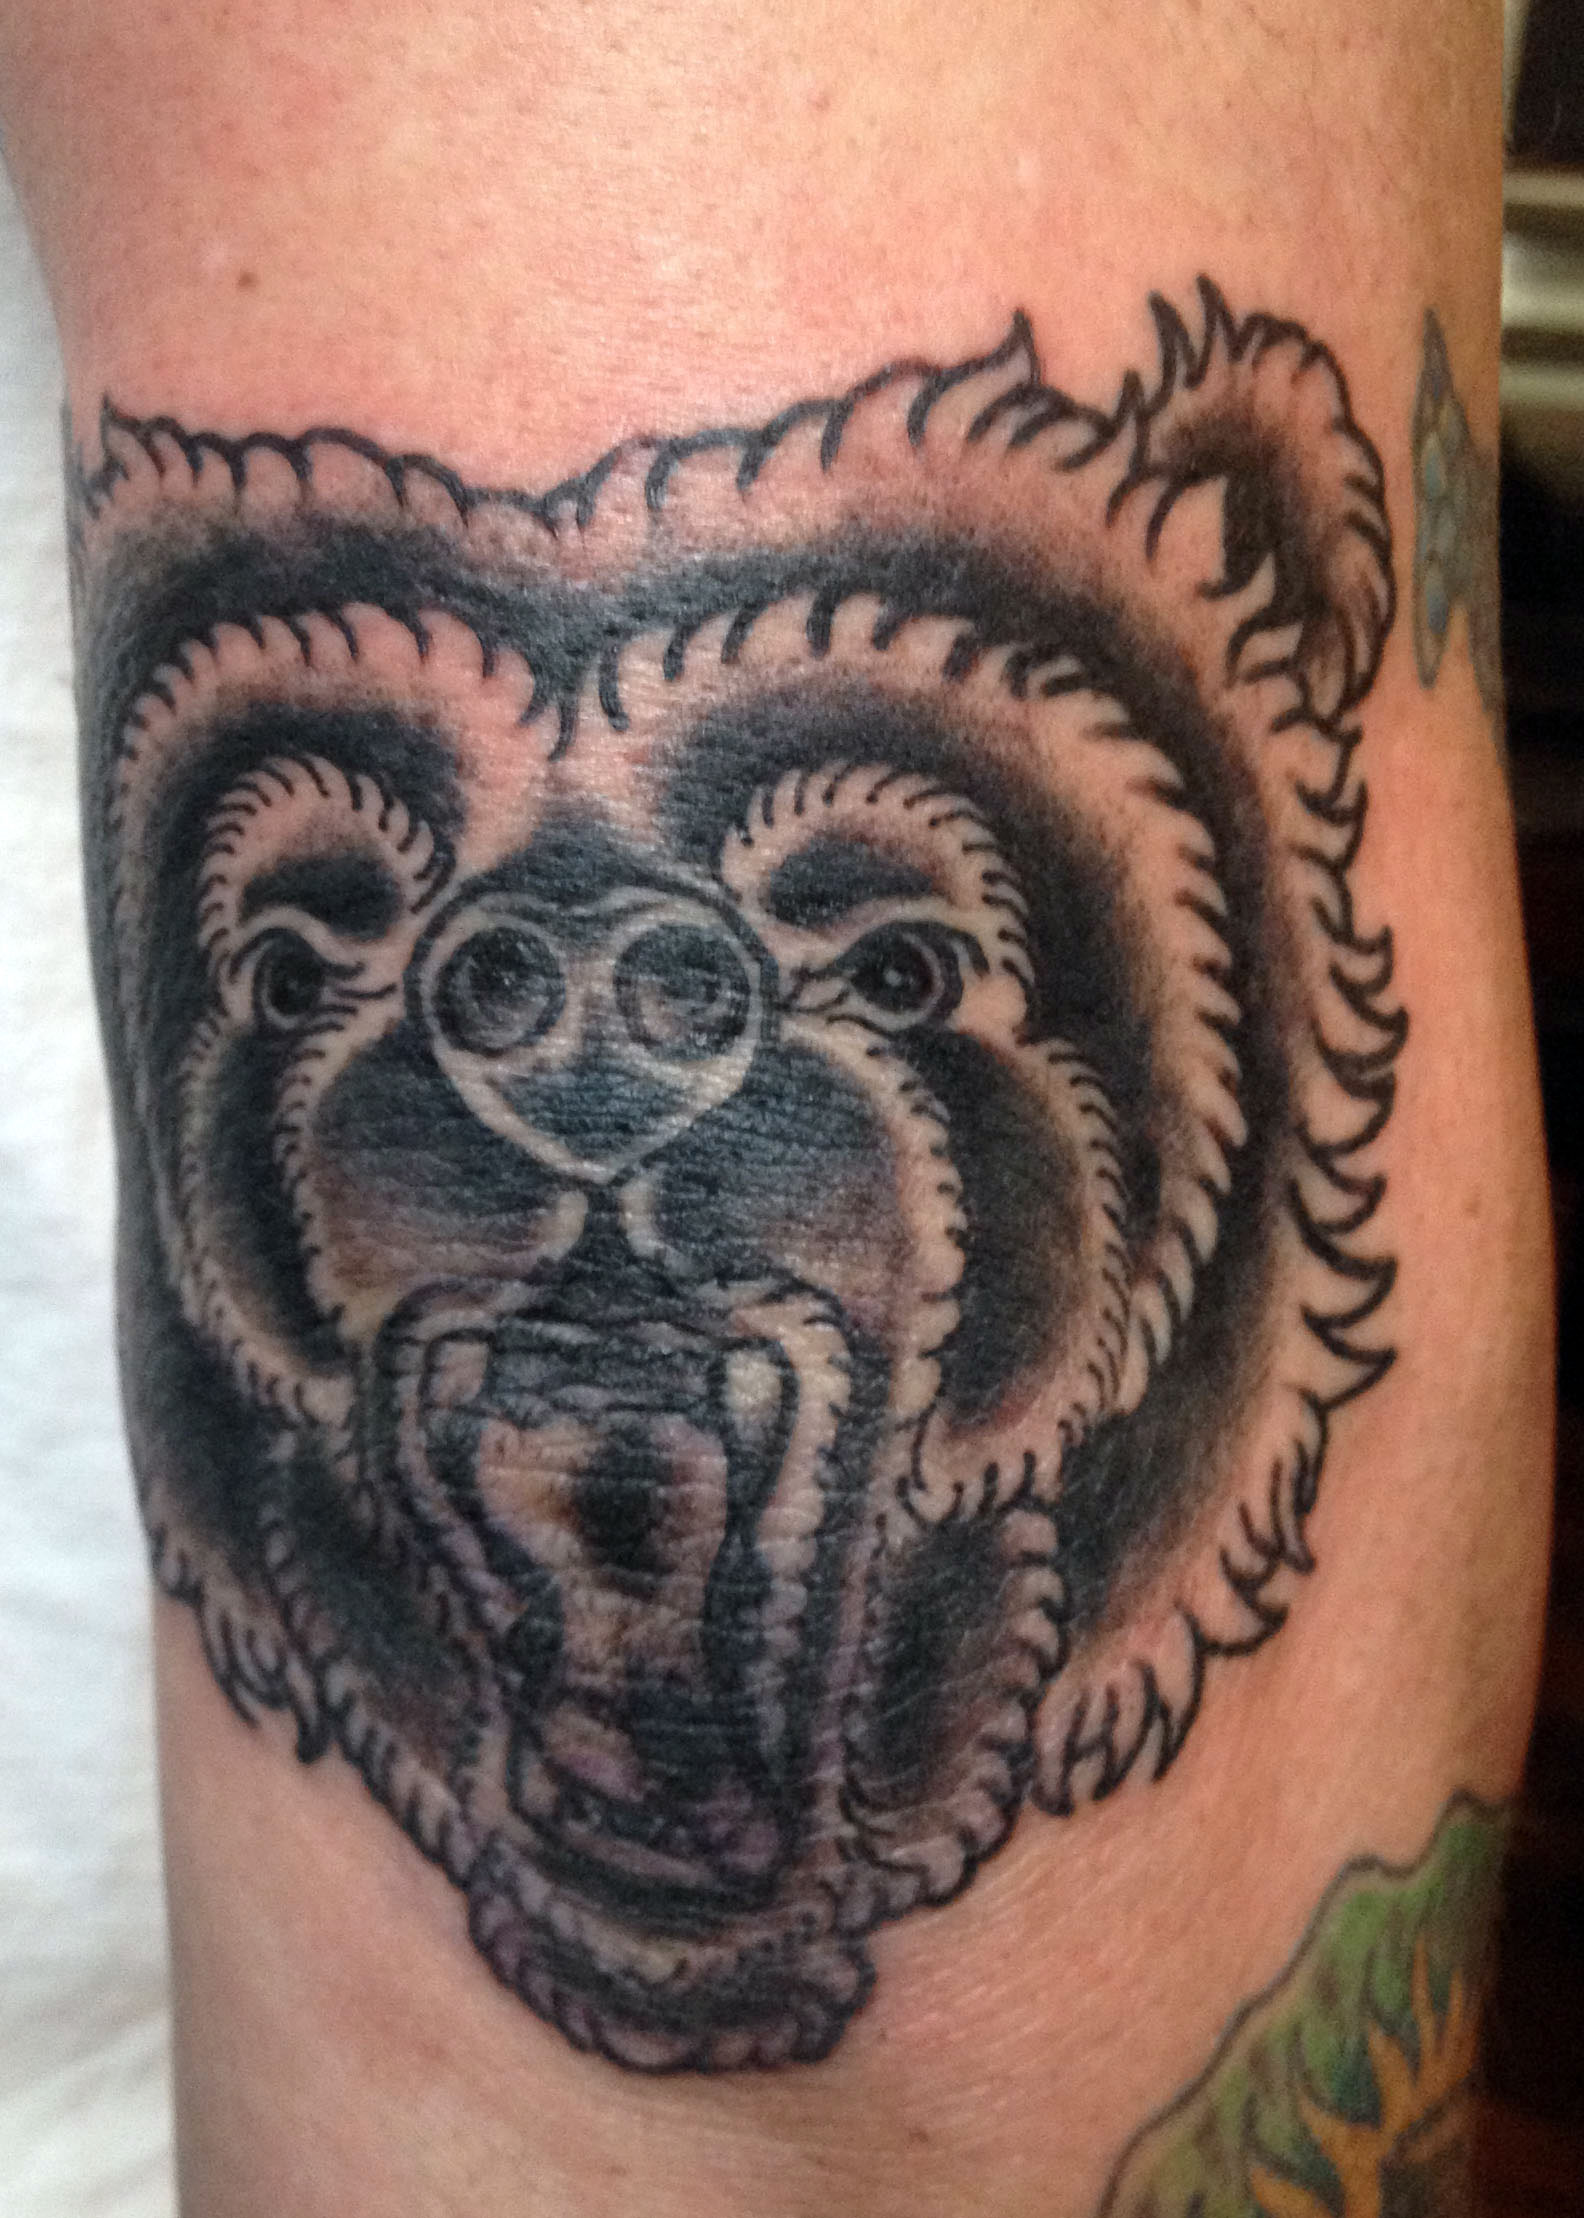 Black Bear Tattoo Designs